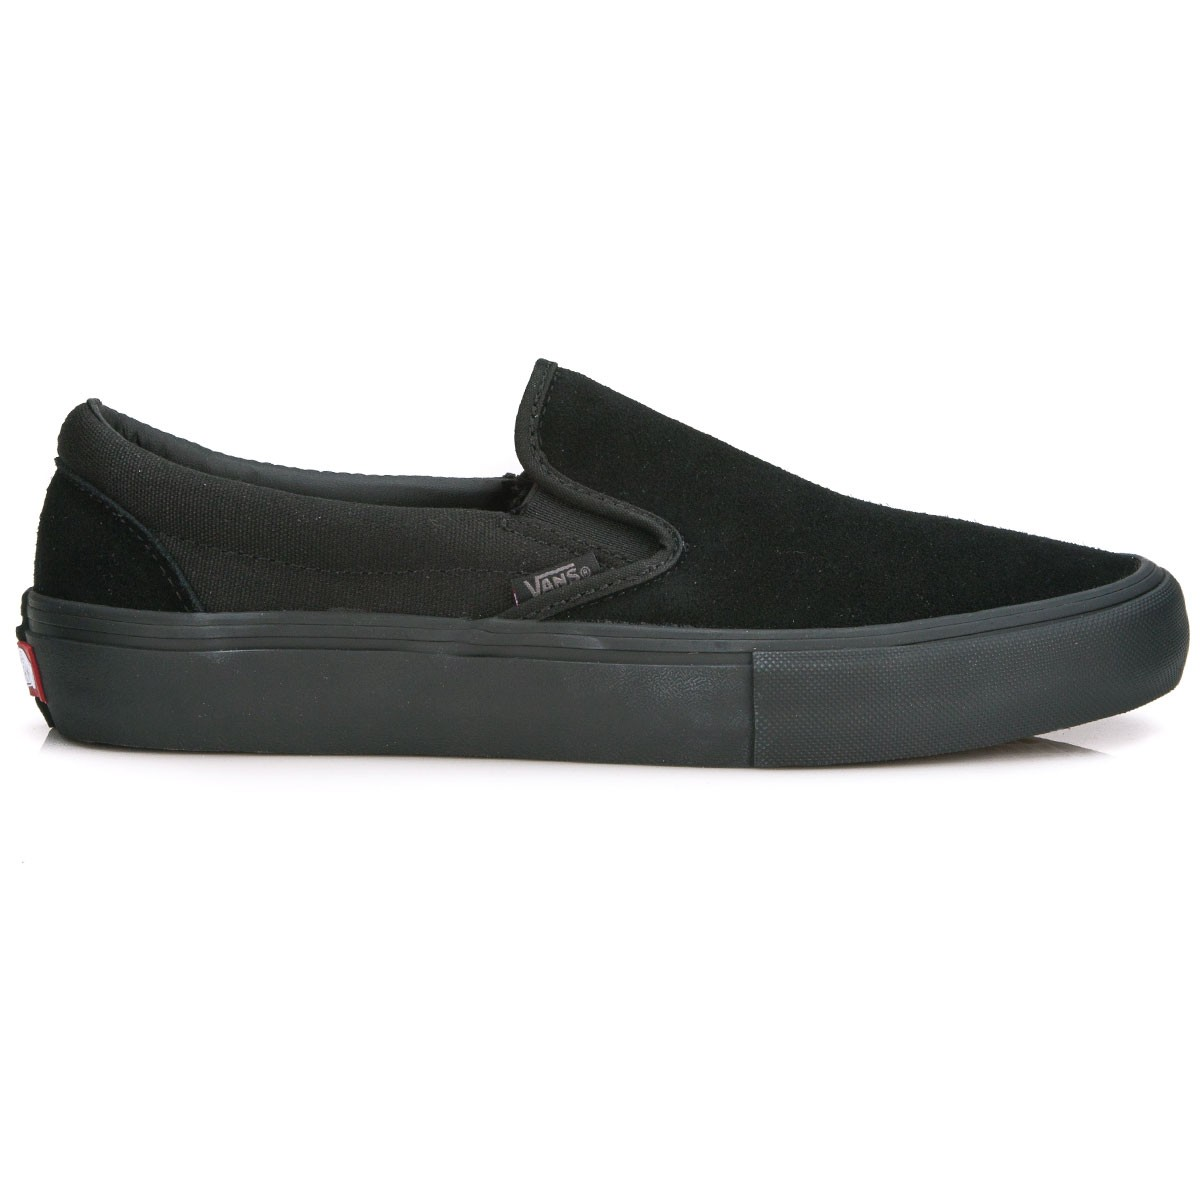 38fa071fd0 Vans Slip-On Pro Shoes - Blackout - 6.5